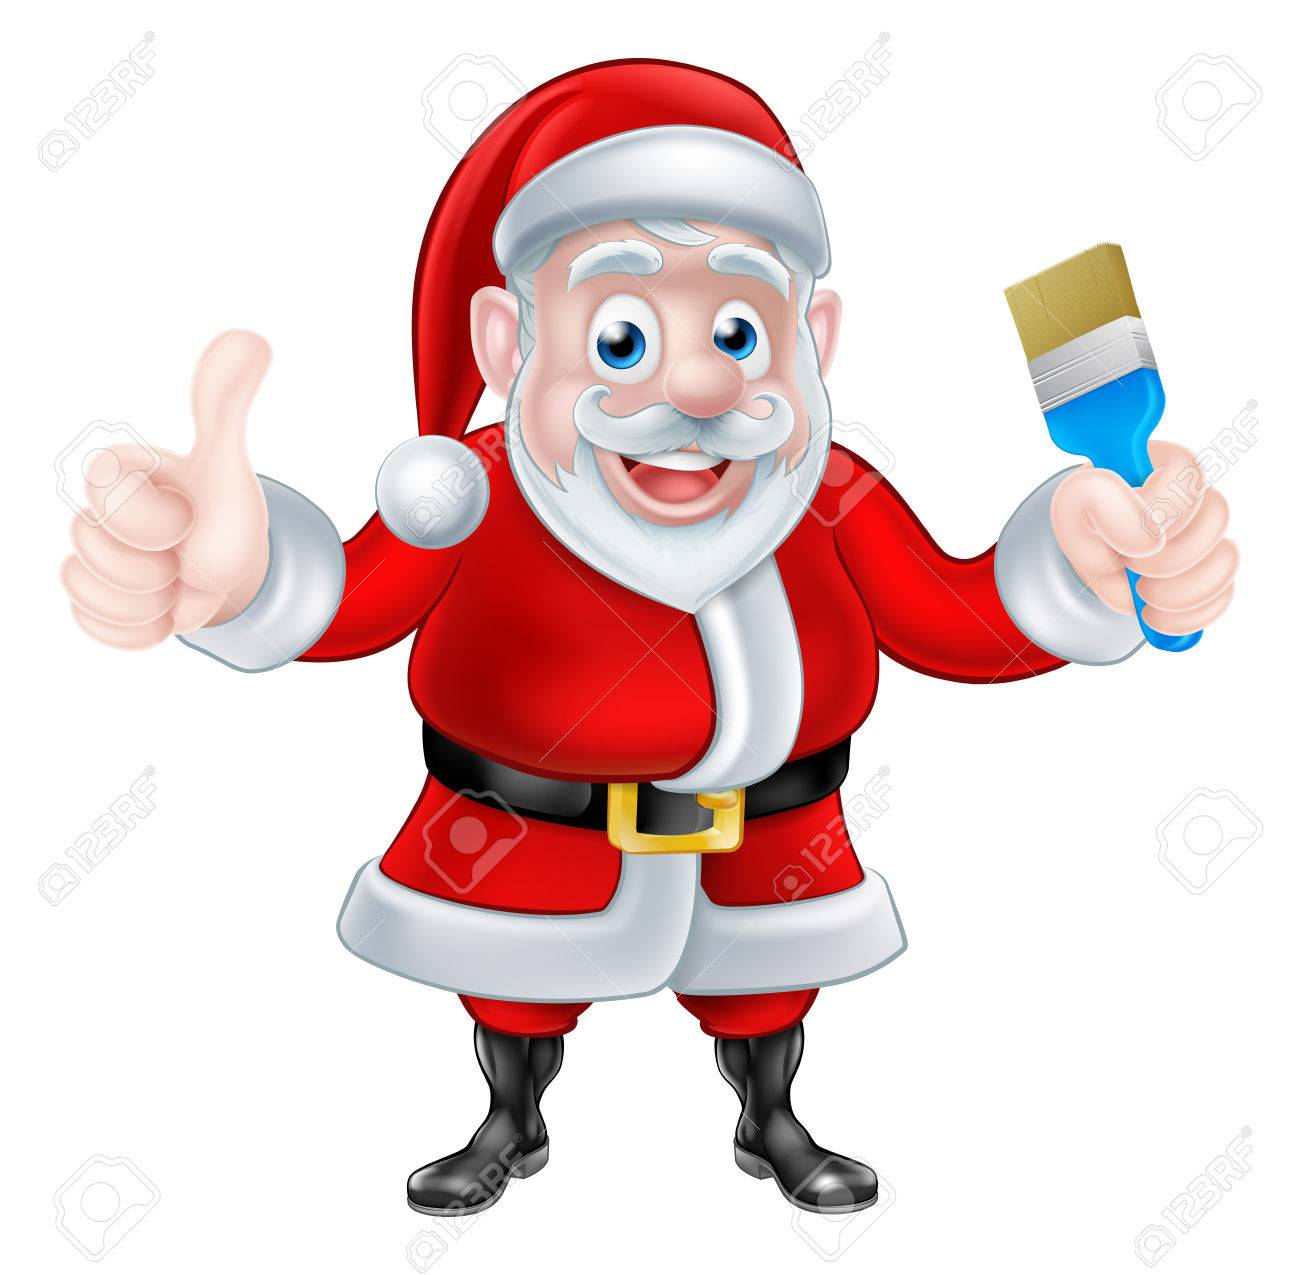 1300x1275 Christmas Cartoon Santa Claus Holding A Paint Brush And Giving